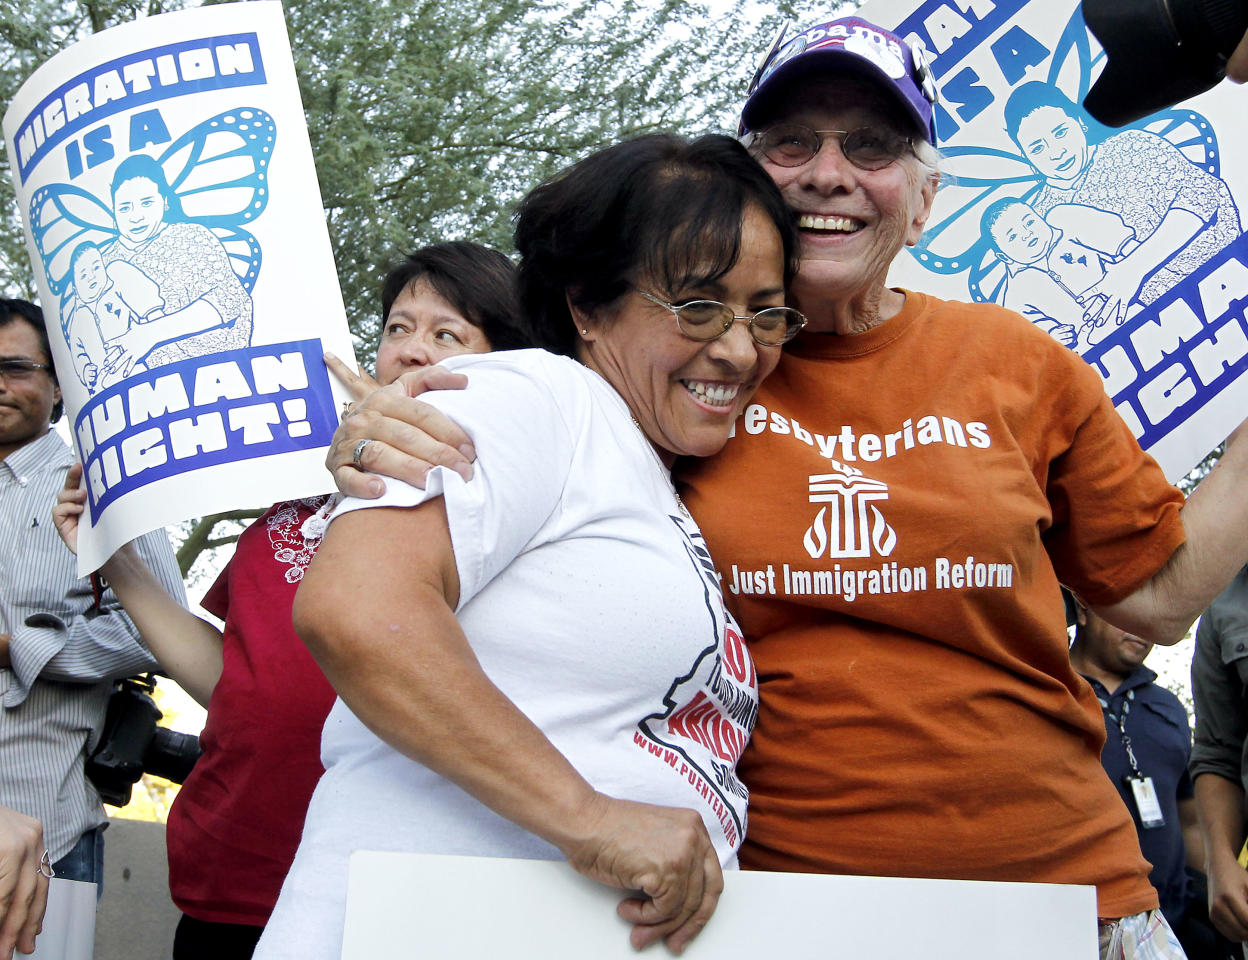 """Maria Jesus Rodriguez, left, gets a hug from Selena Keesecker, after Rodriguez spoke about her story as they join dozens who rally in front of U.S. Immigration and Customs Enforcement building, a day after a portion of Arizona's immigration law took effect, Wednesday, Sept. 19, 2012, in Phoenix. Civil rights activists contend will lead to systematic racial profiling, as the protesters chanted """"No papers, no fear."""" (AP Photo/Ross D. Franklin)"""